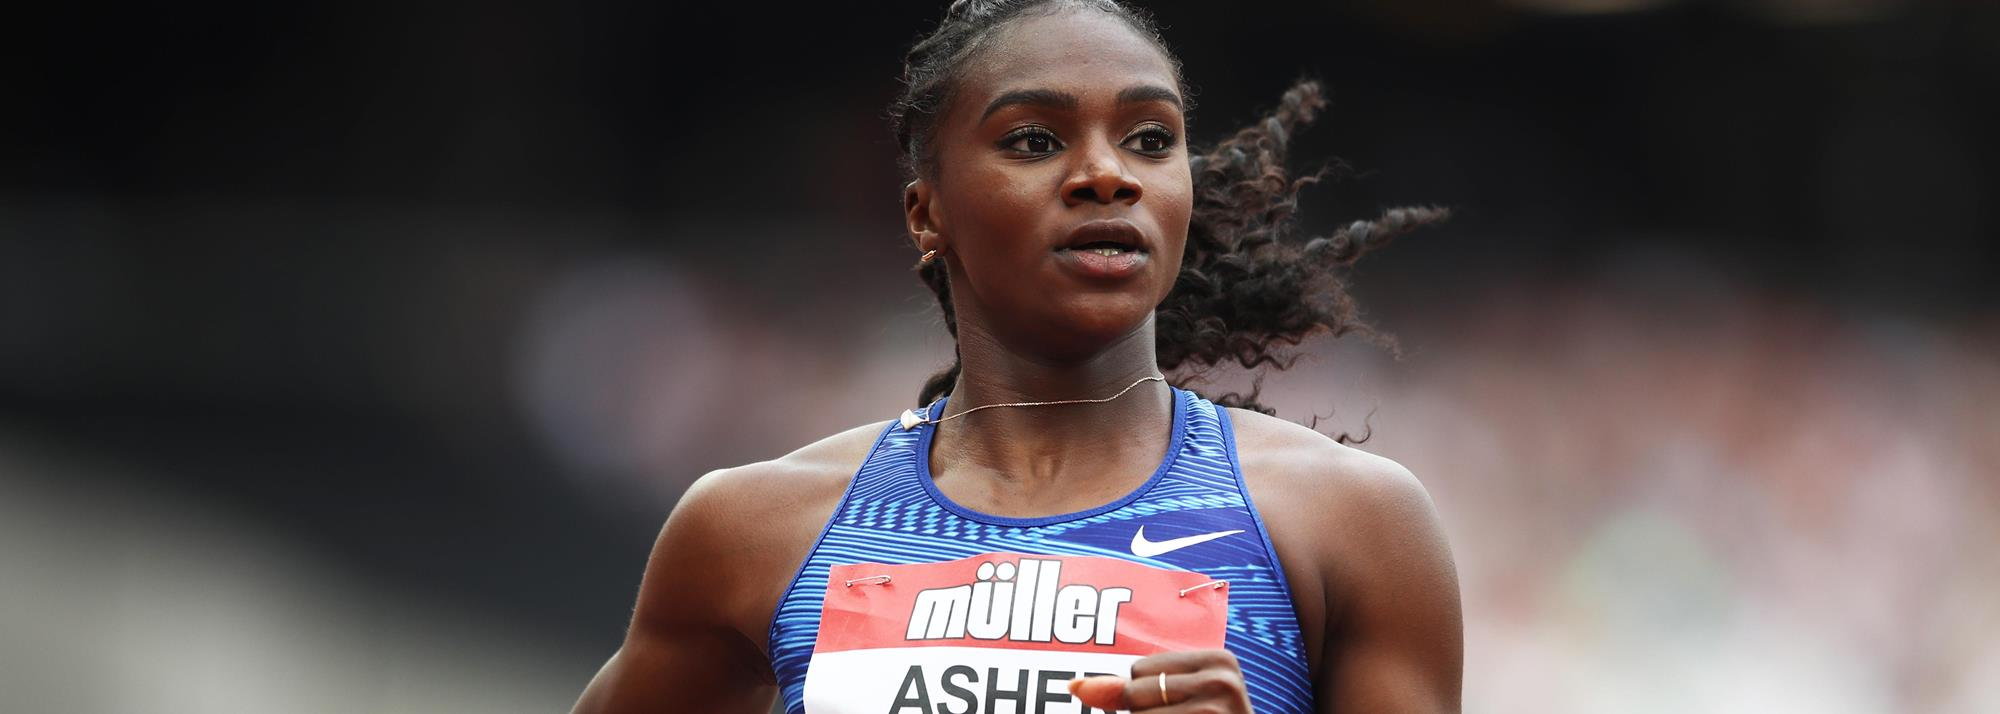 Asher-Smith to fine-tune Olympic preparations in London